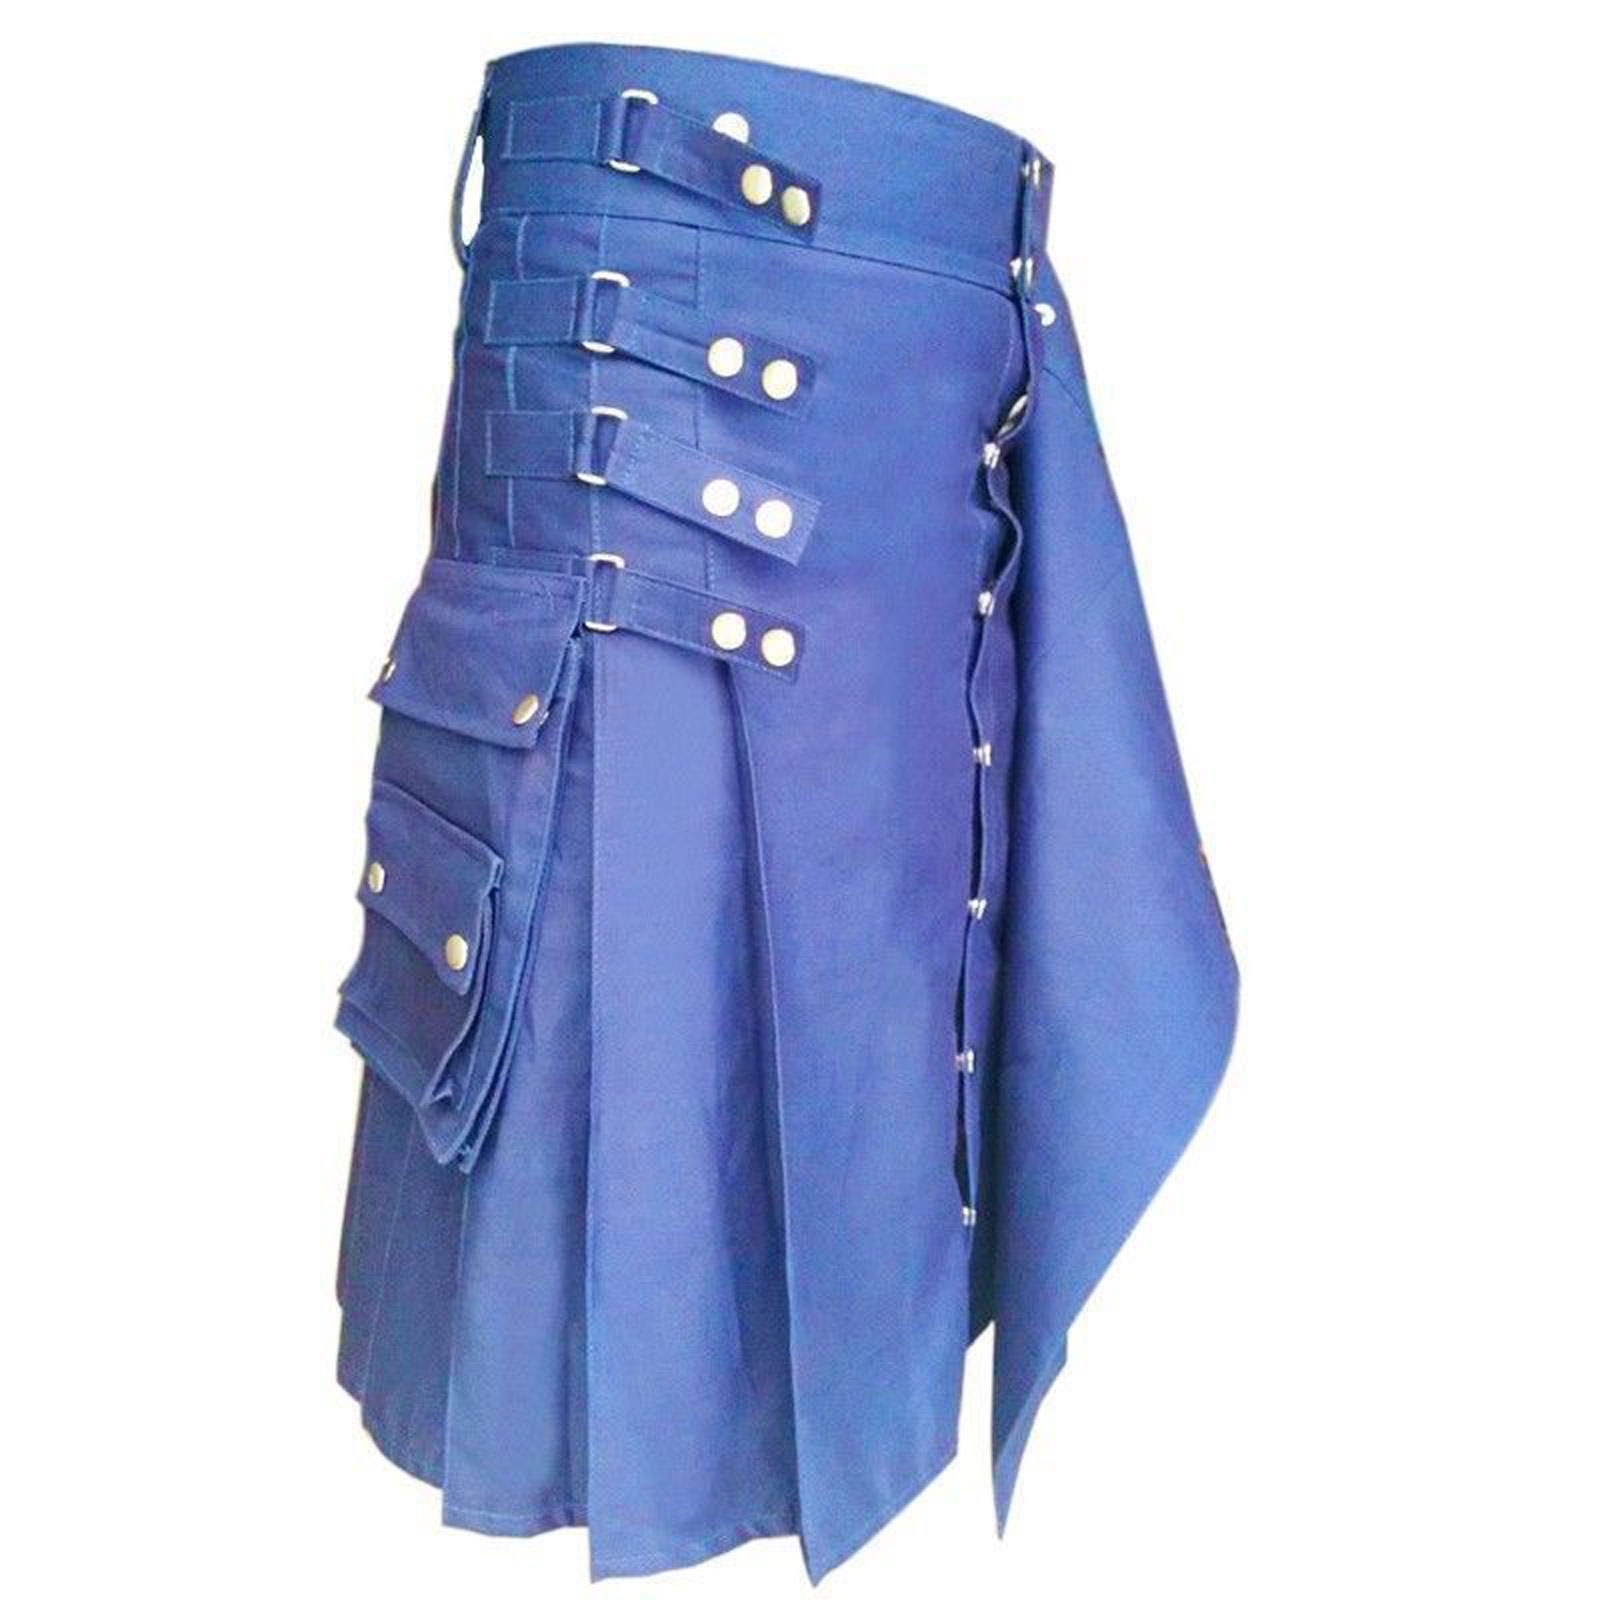 genieun-hybrid-kilt-with-interchangeable-front-apron-blue-kilt